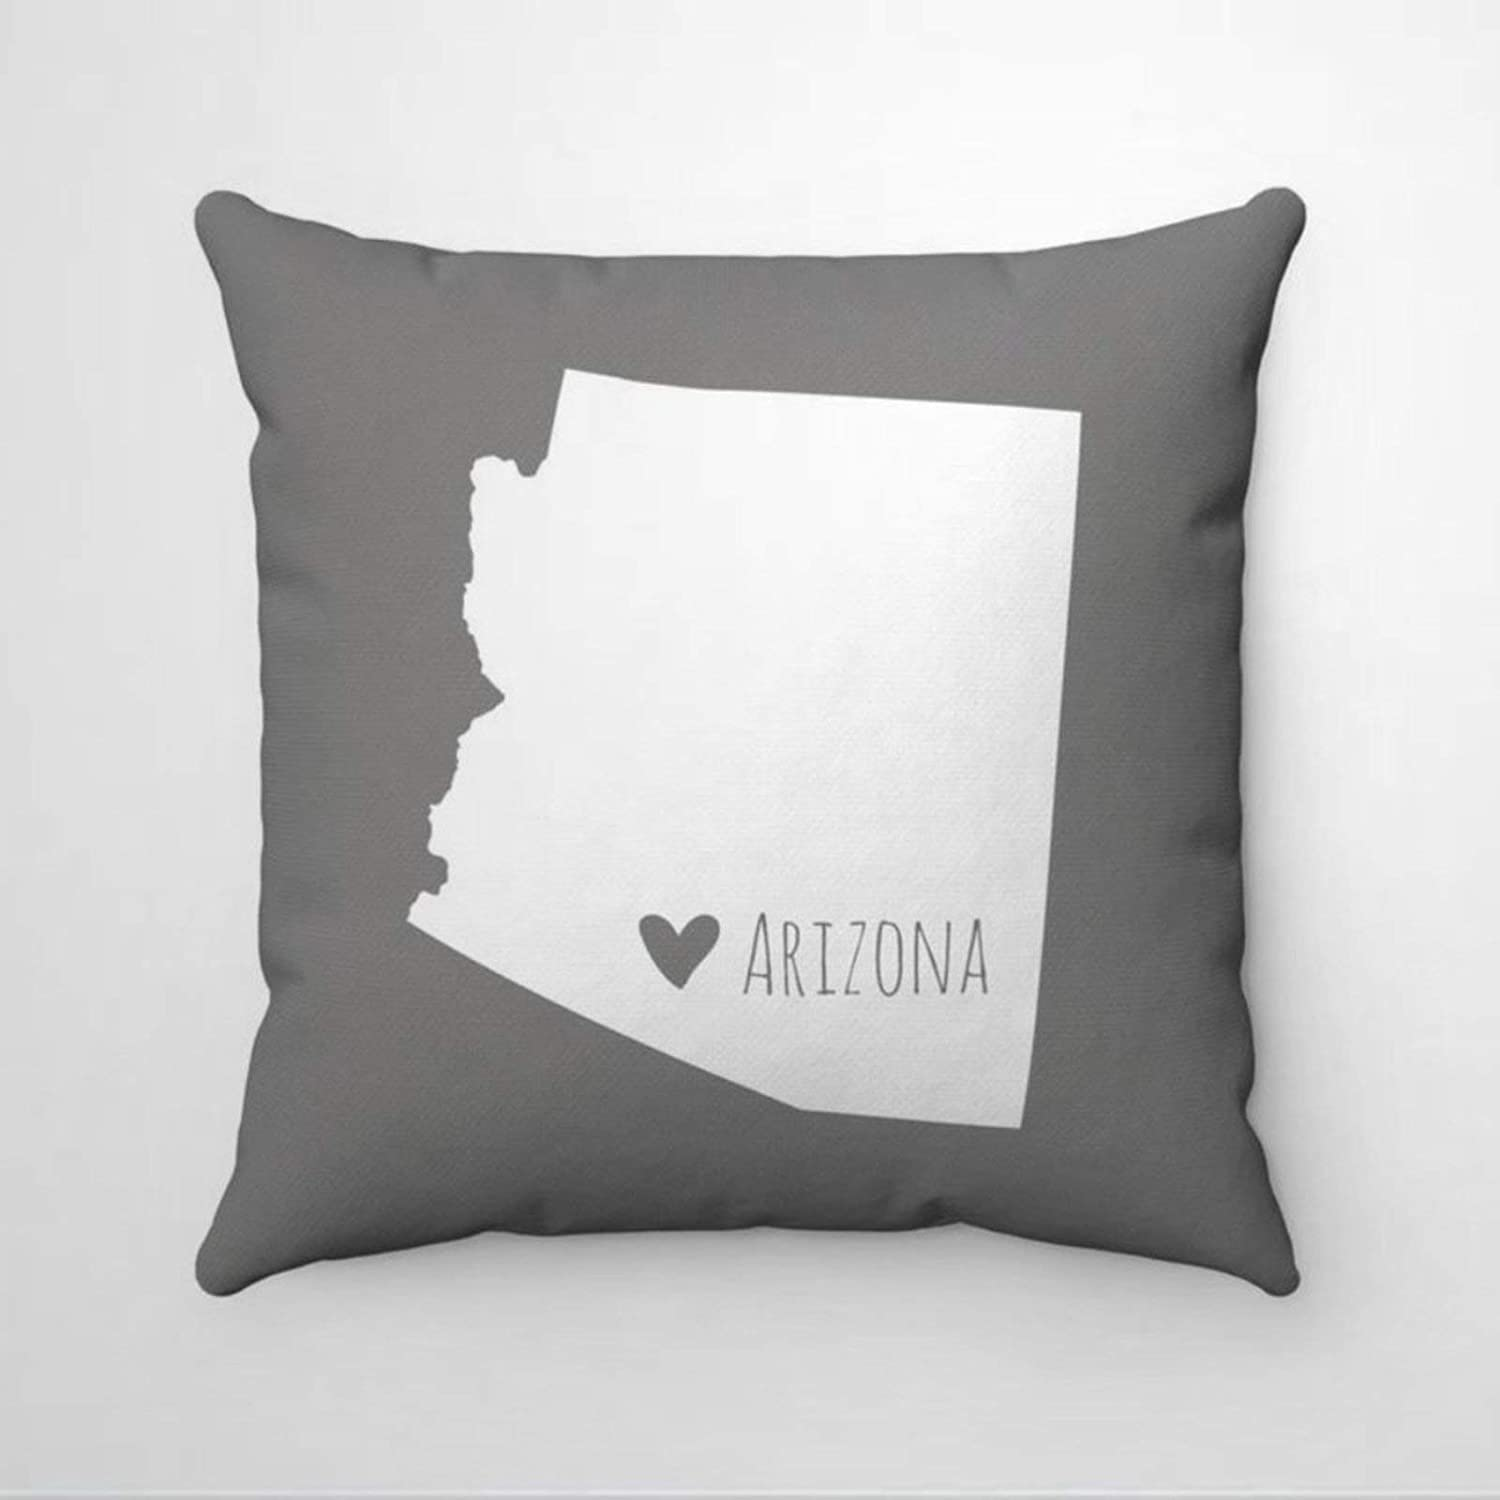 "DONL9BAUER Heart Arizona Map Pillowcase Home State Map Decorative Square Throw Pillow Covers Farmhouse Cushion Cover for Sofa Couch Home Decor 18""x18"""